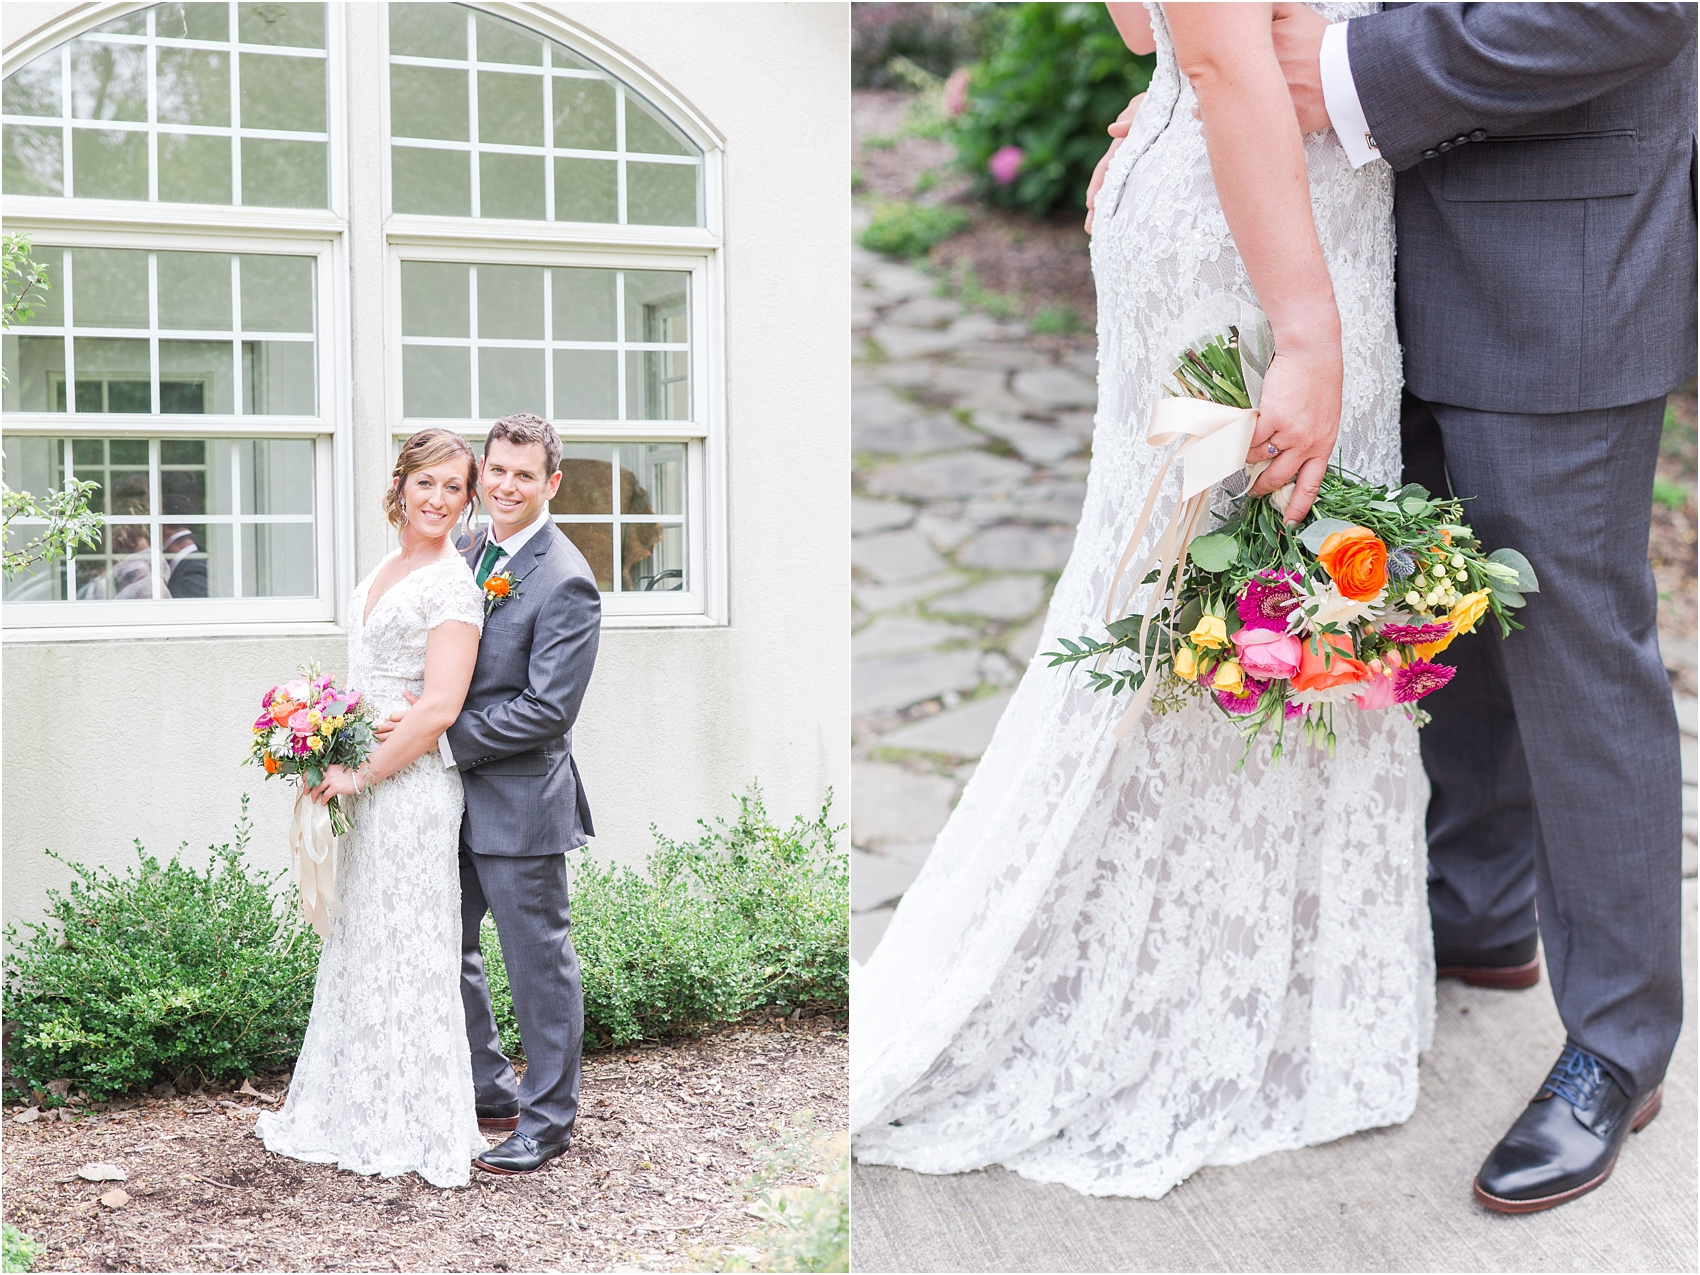 romantic-intimate-backyard-wedding-photos-at-private-estate-in-ann-arbor-mi-by-courtney-carolyn-photography_0062.jpg